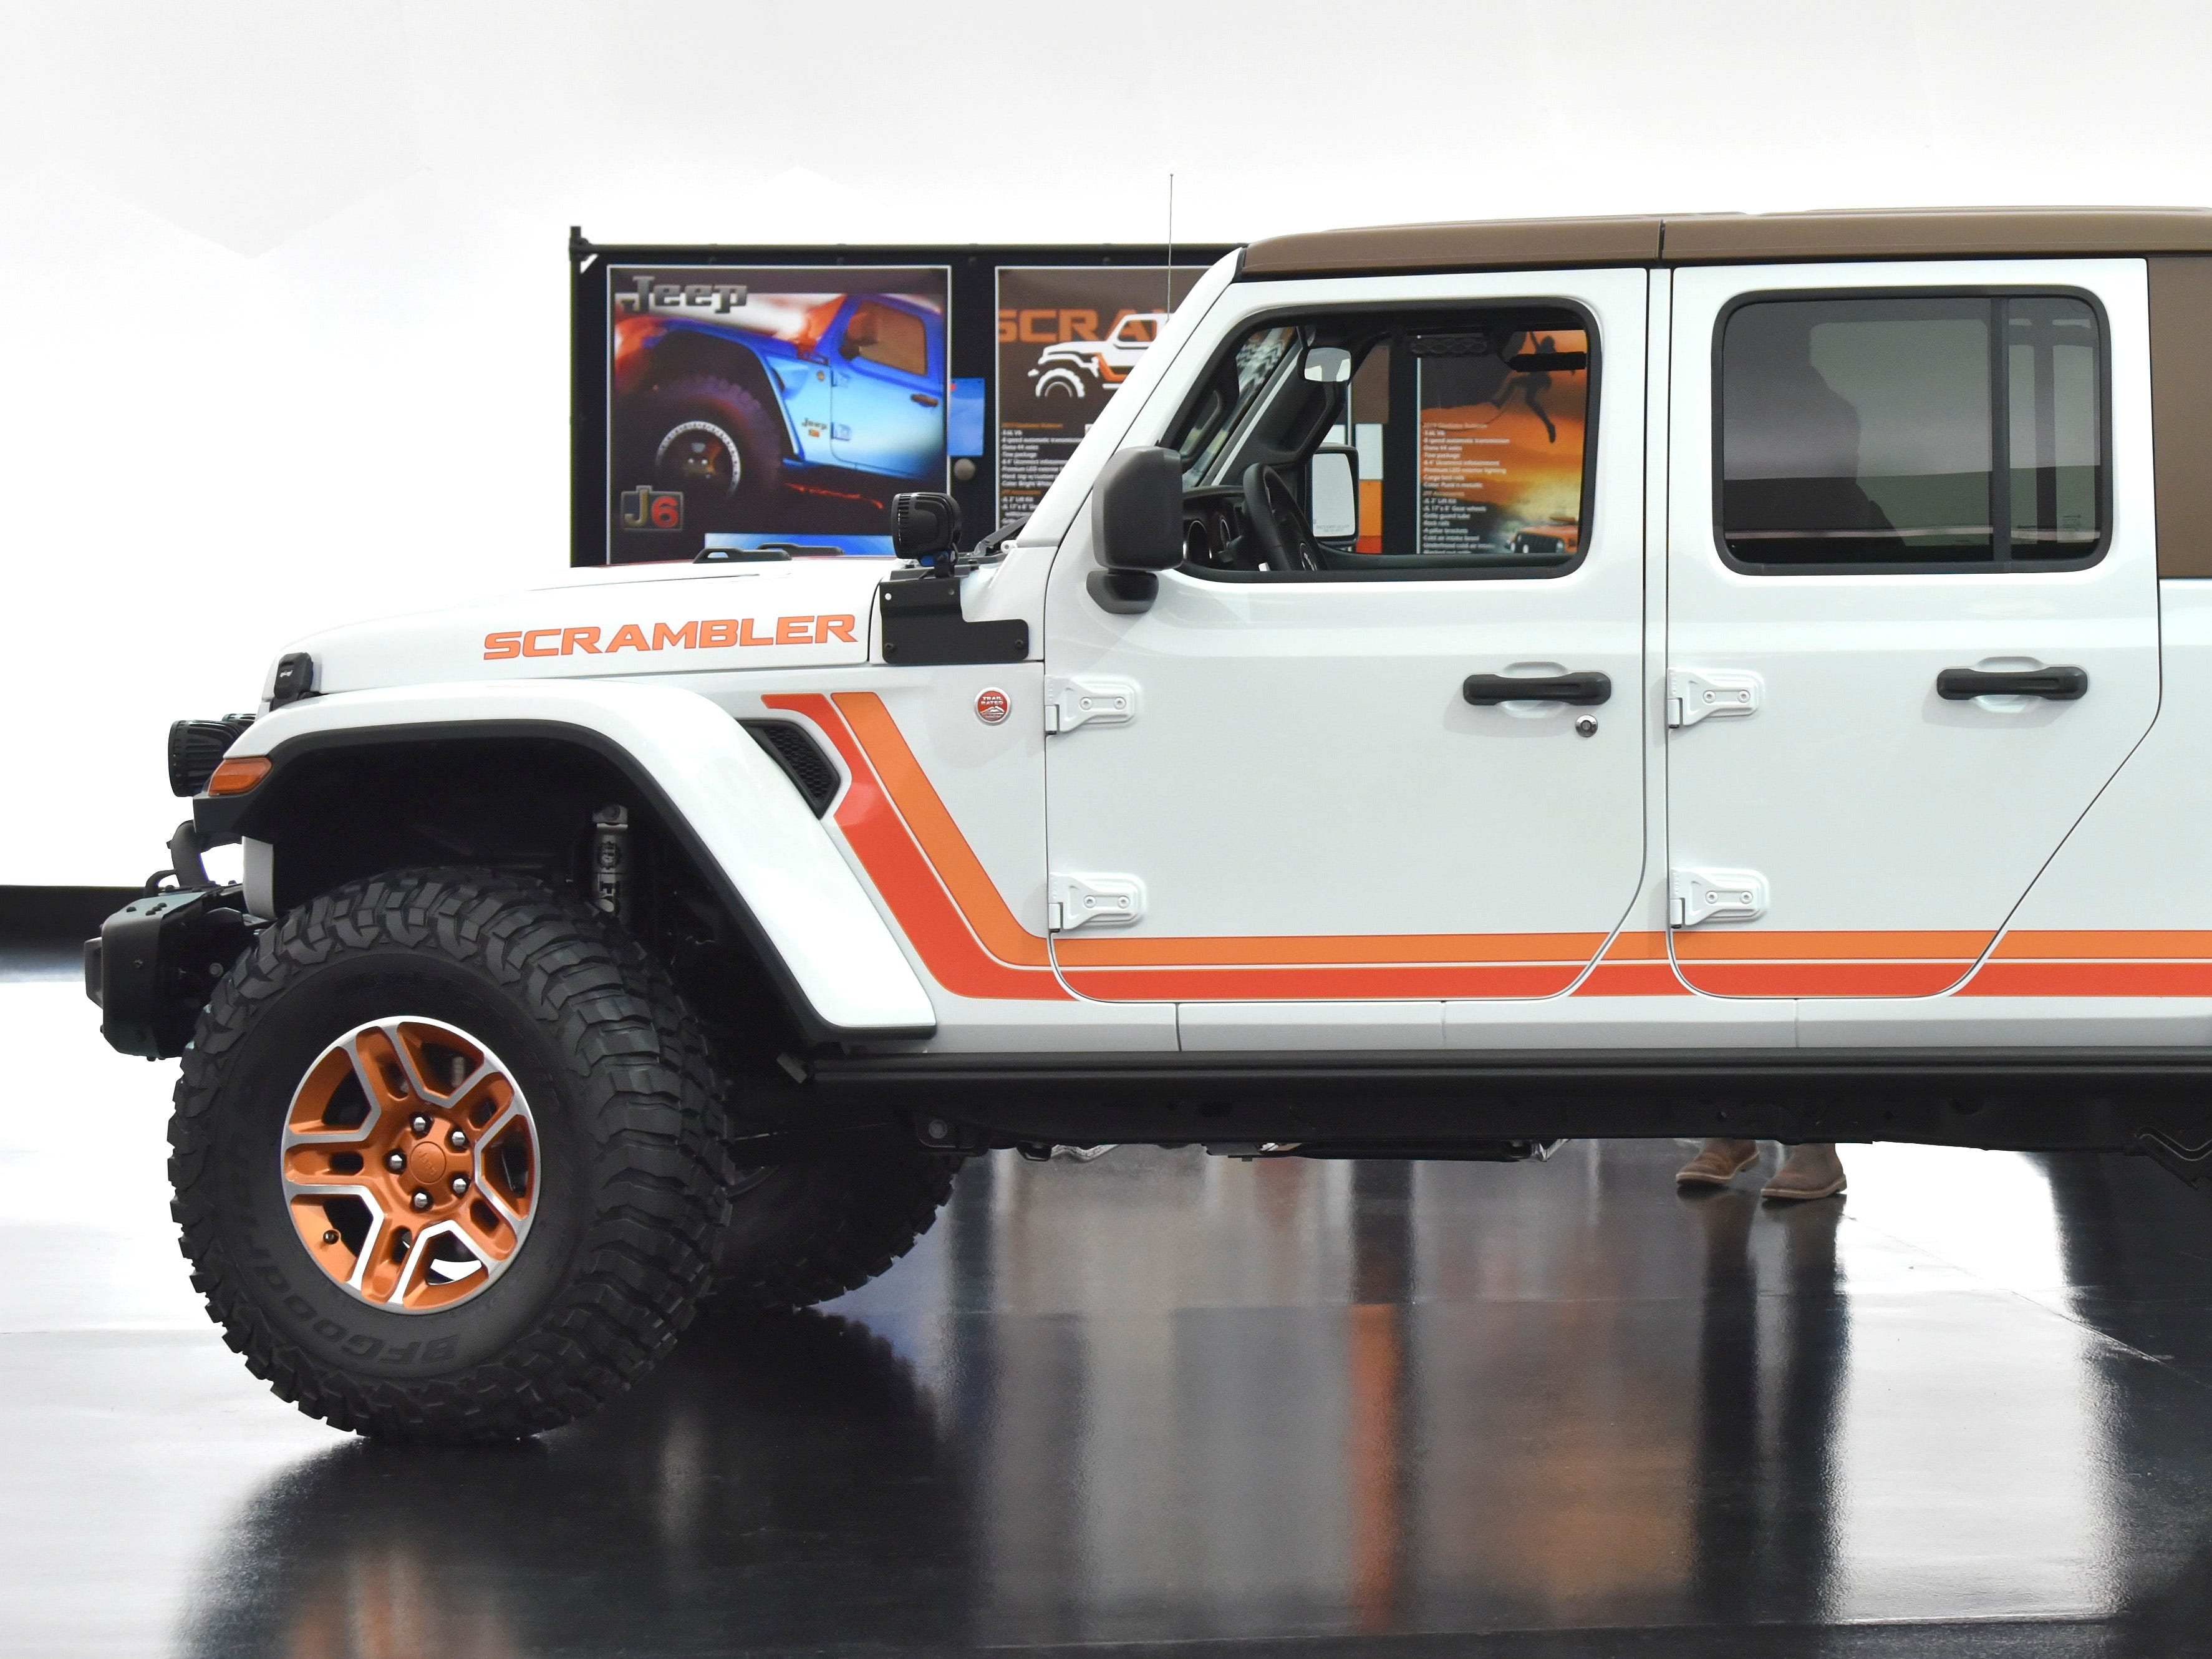 This is the Jeep JT Scrambler.